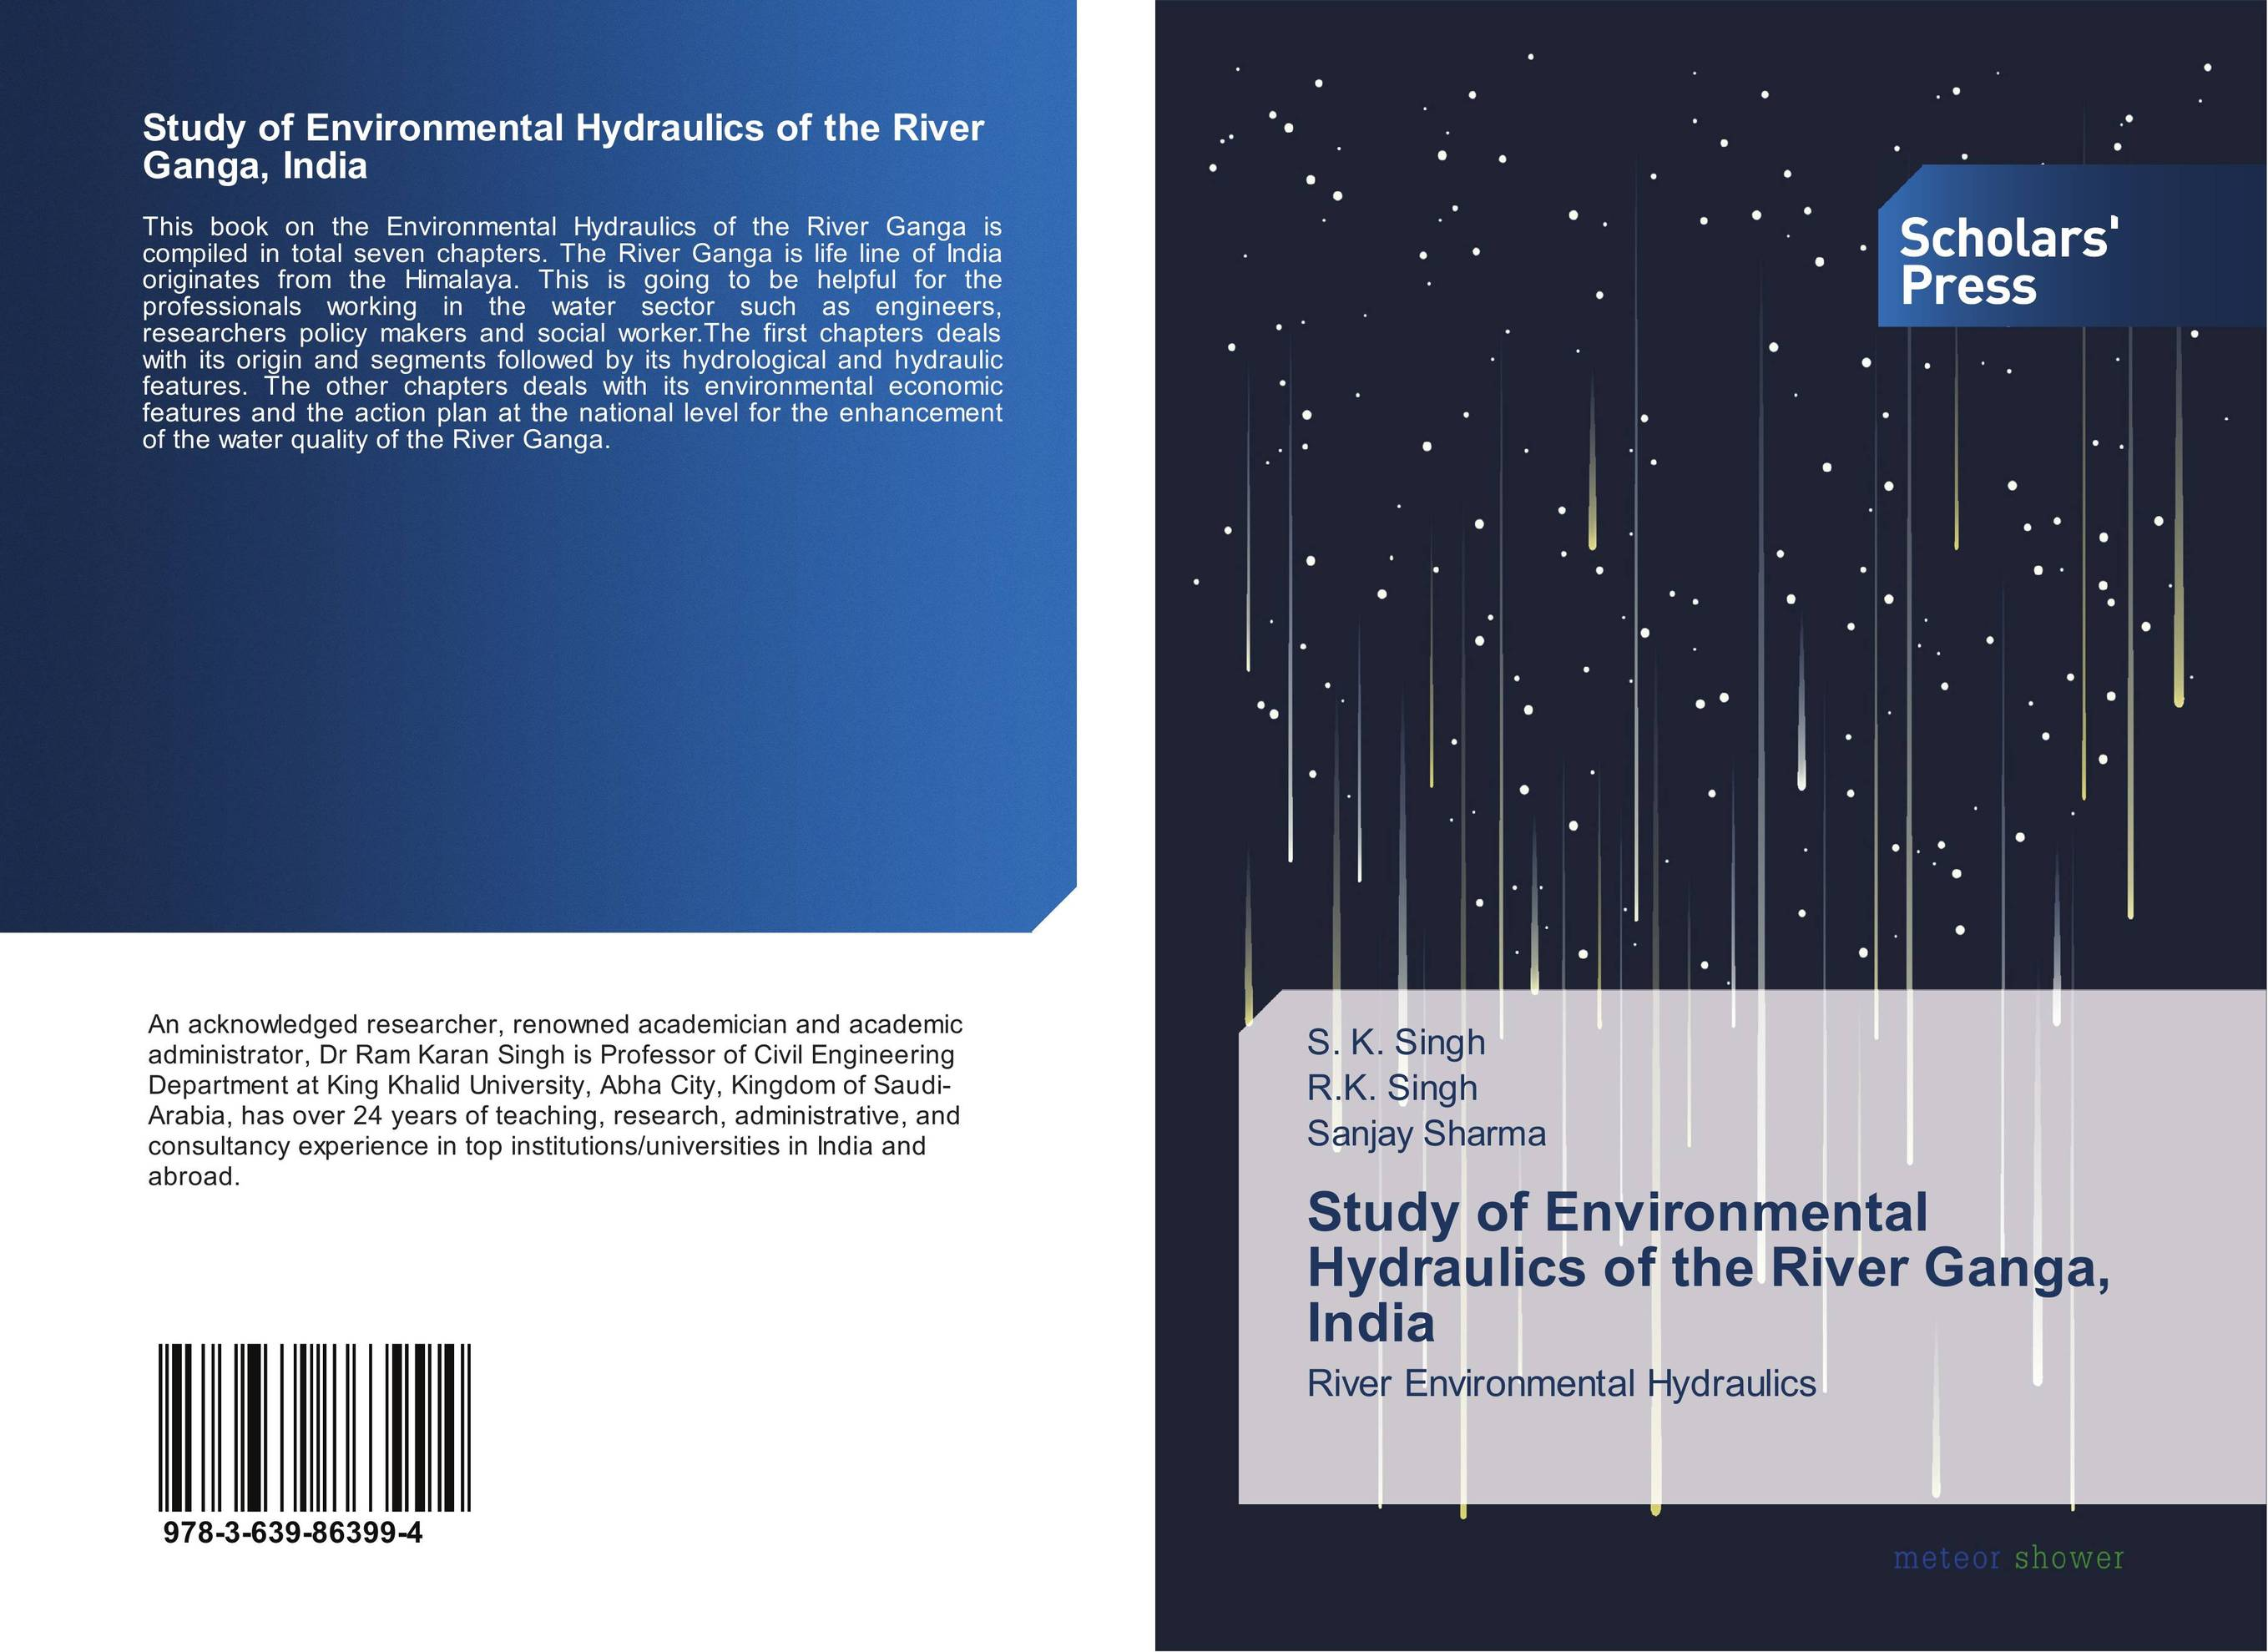 Study of Environmental Hydraulics of the River Ganga, India